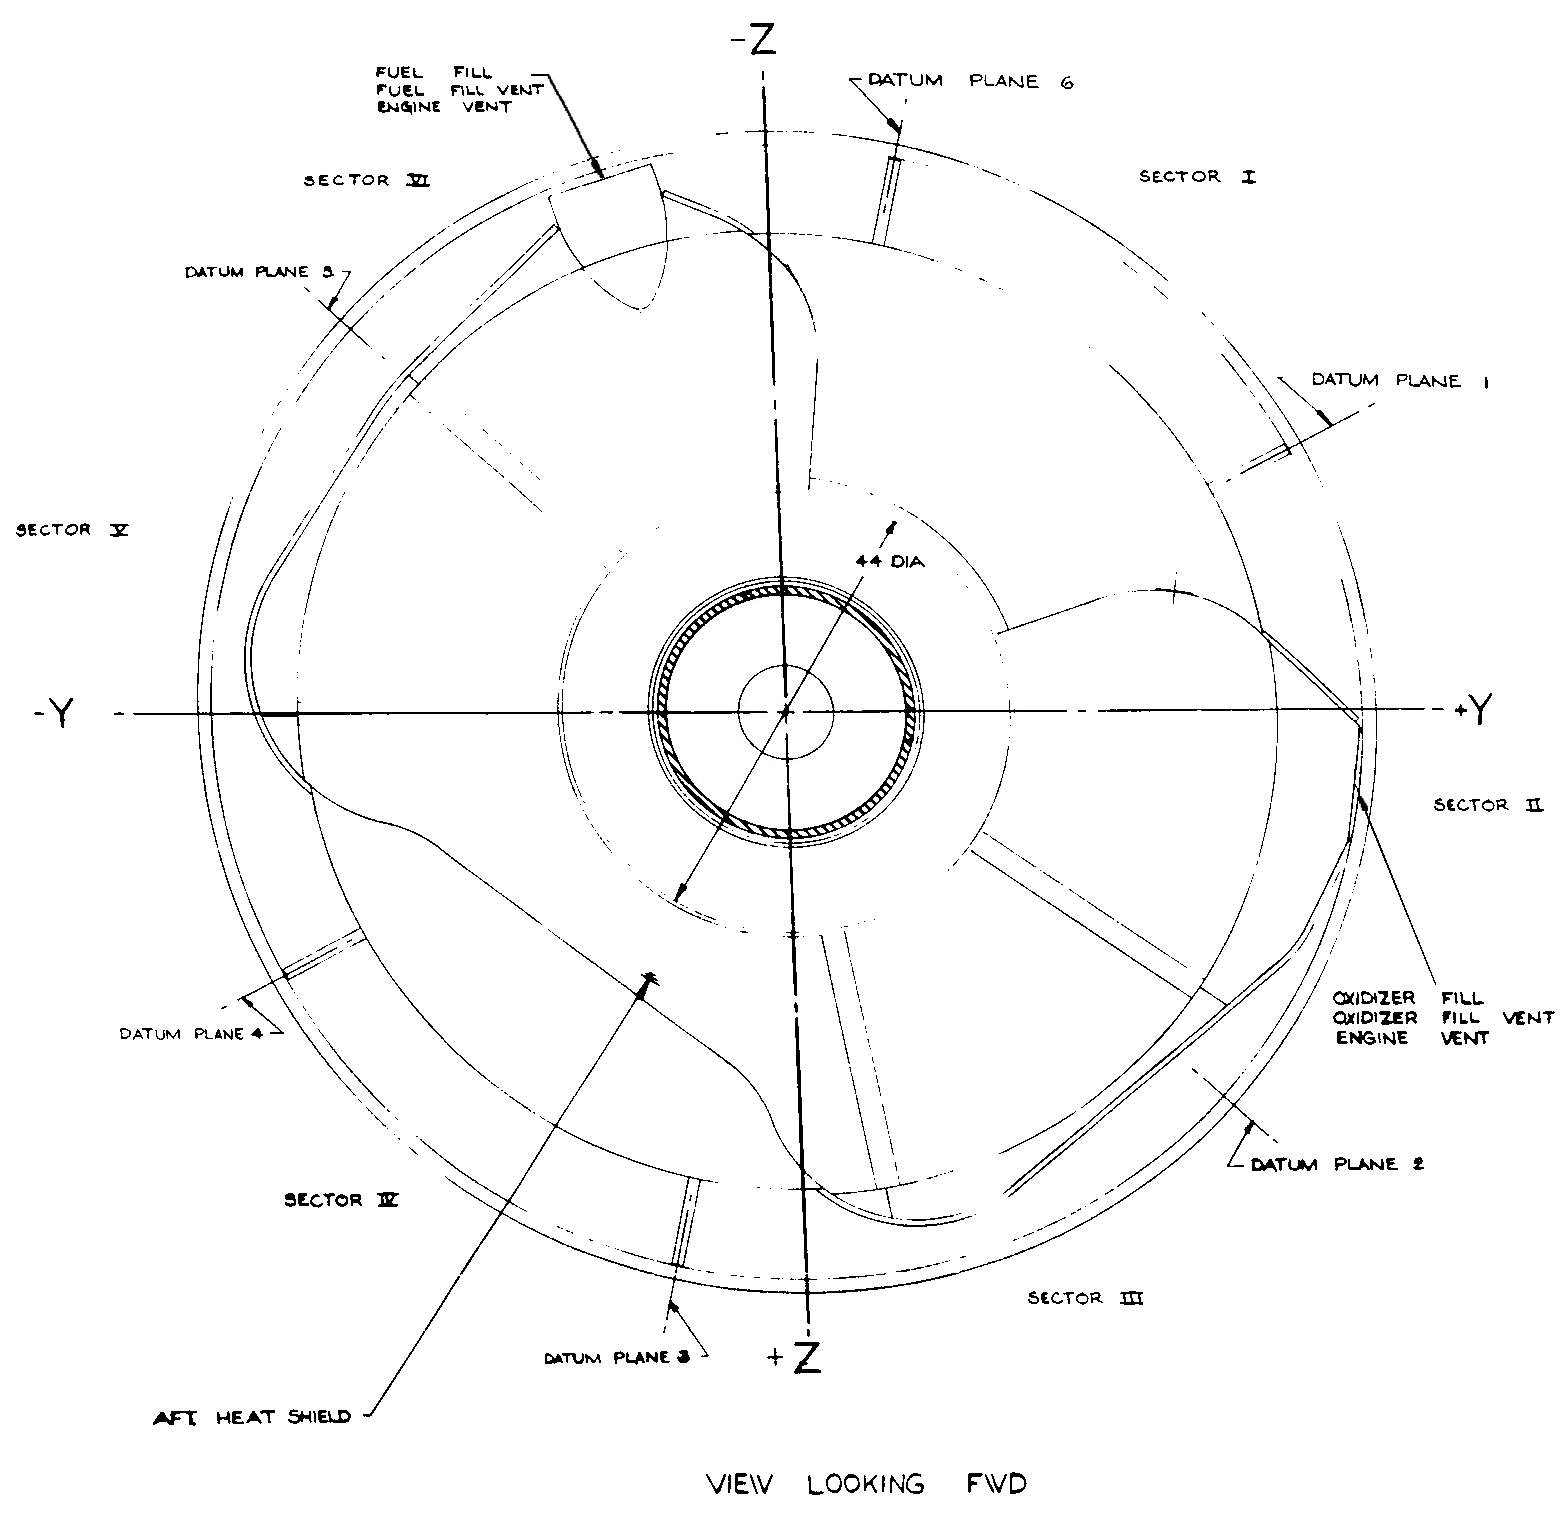 Est Duct Detector Wiring Diagram Centrifugal Switch